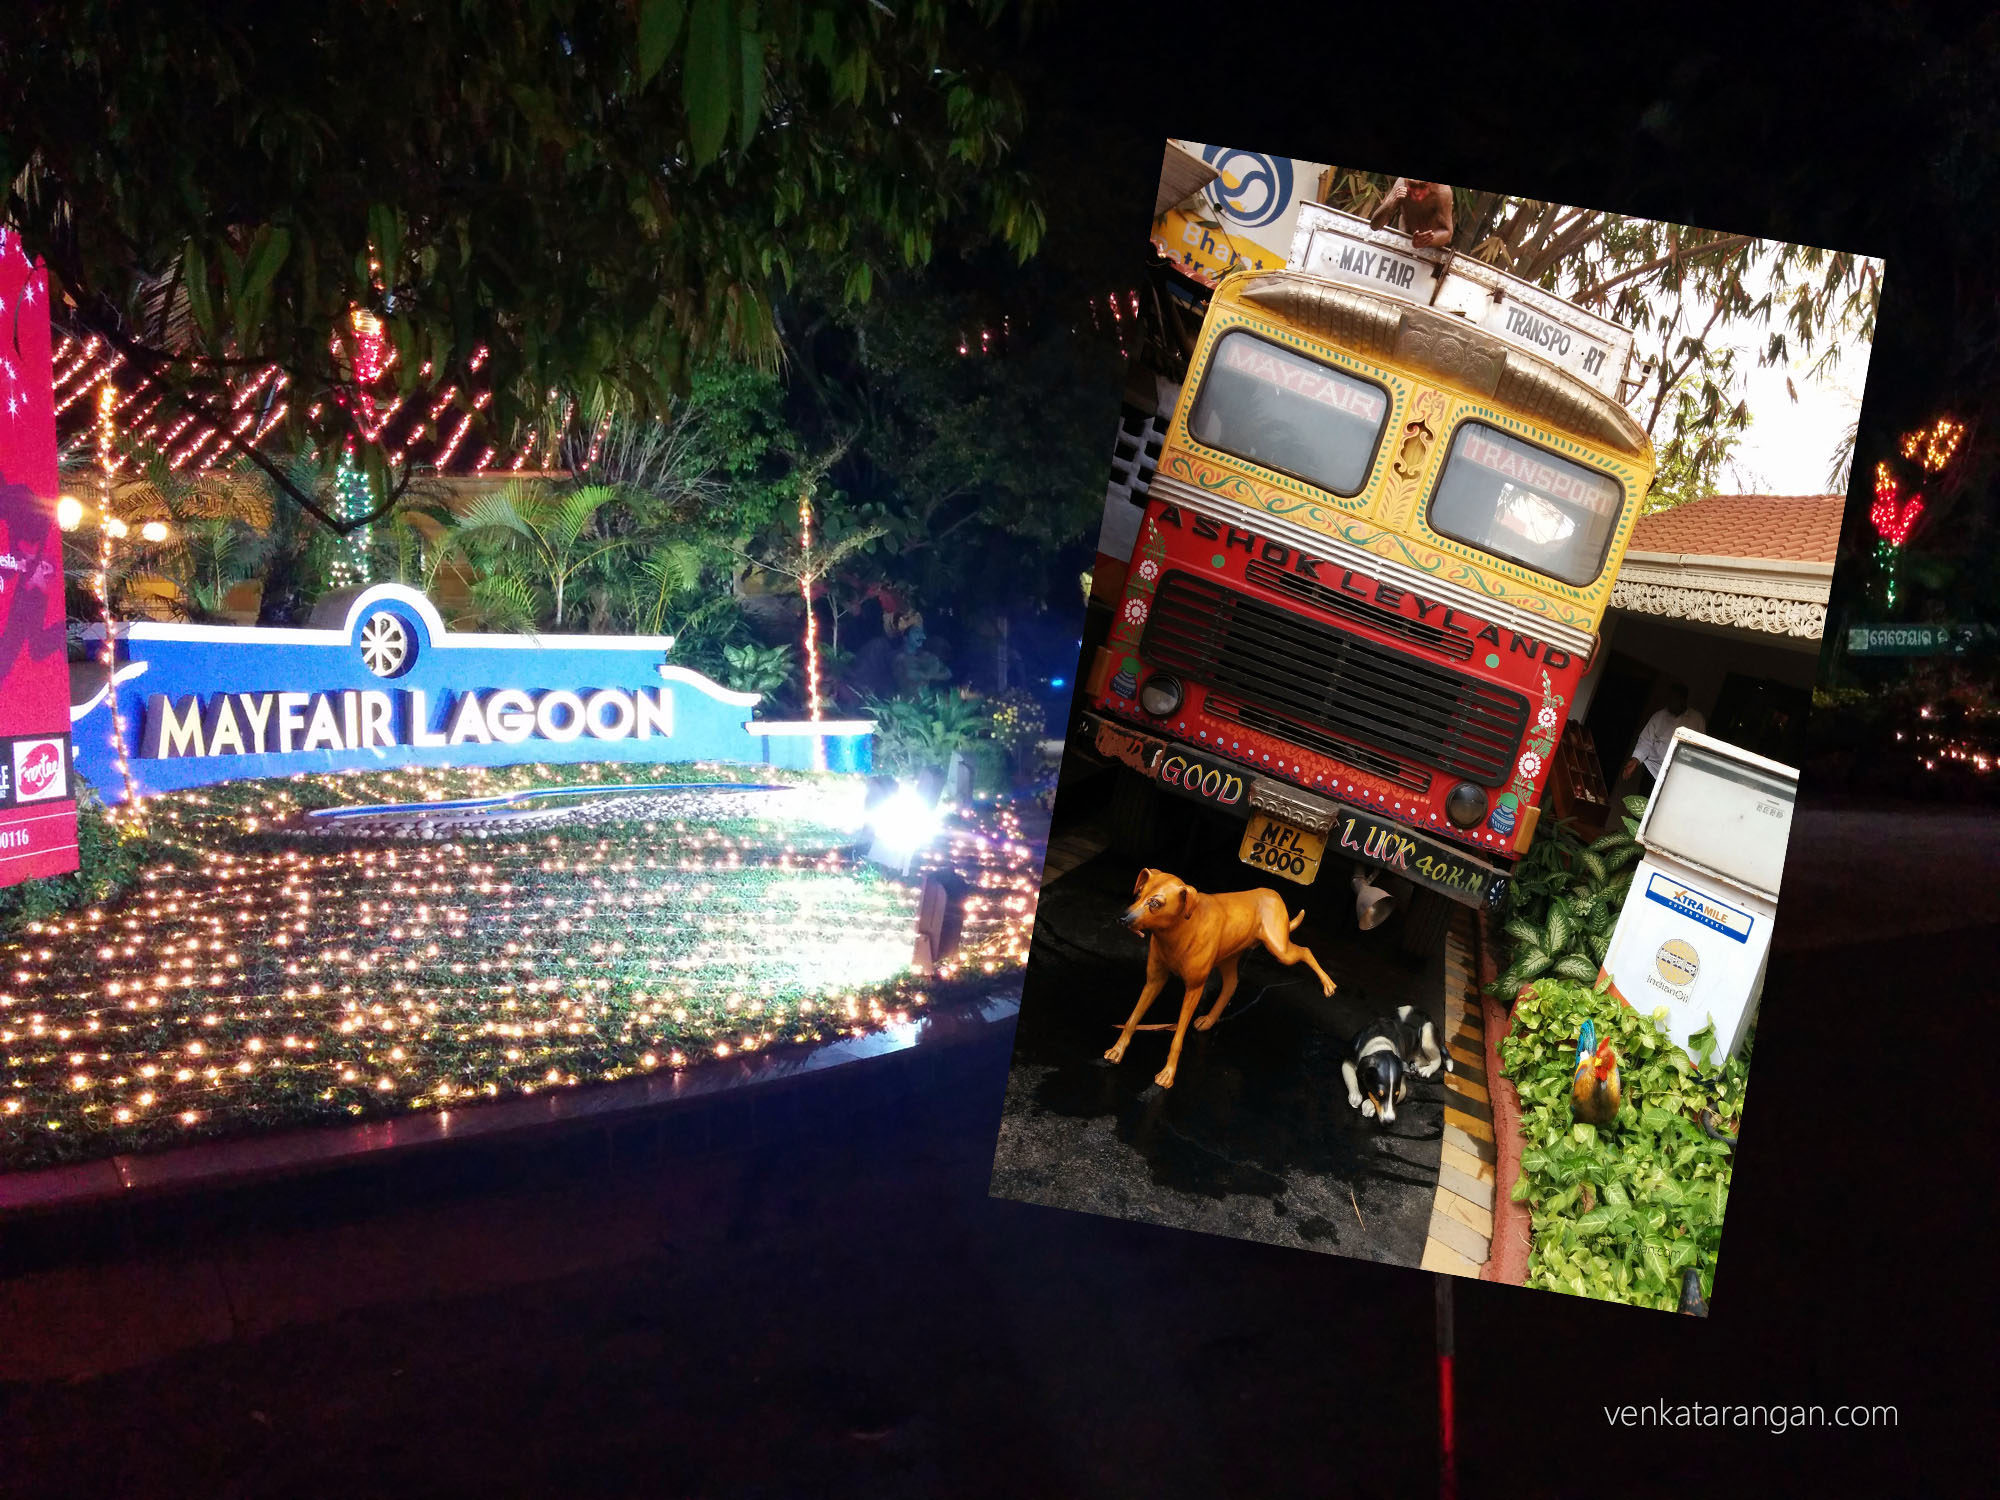 Mayfair Lagoon, Bhubaneswar - (Inside Pic) A replica of a scene where a lorry is filling fuel and a dog relieving itself!